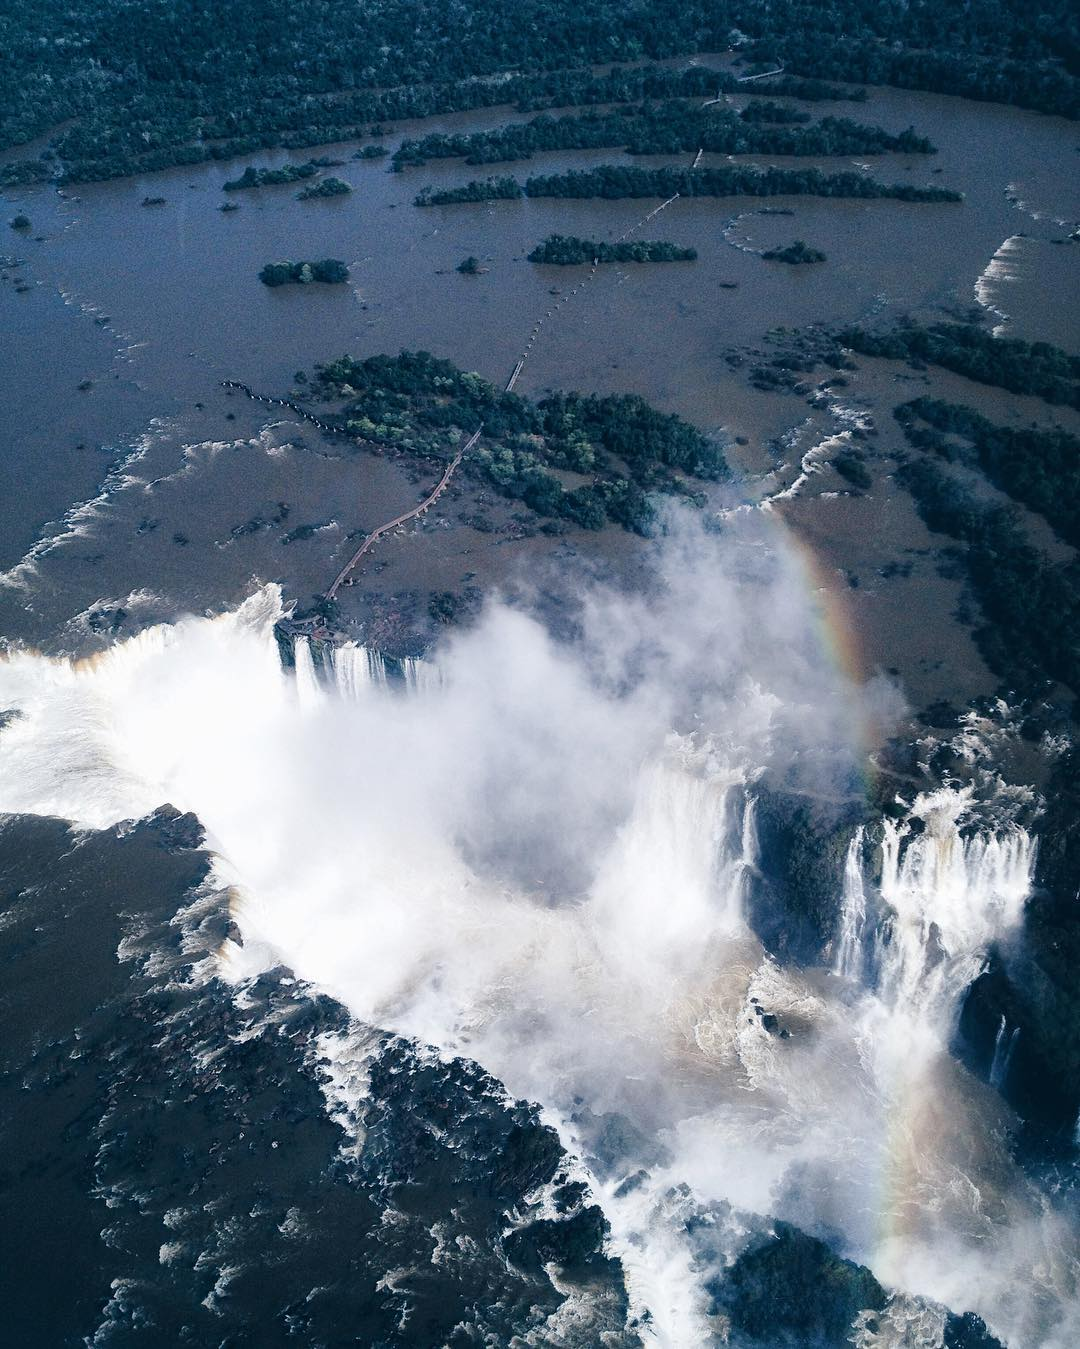 #ThrowbackThursday: Helicopter Ride Over the Iguazu Falls